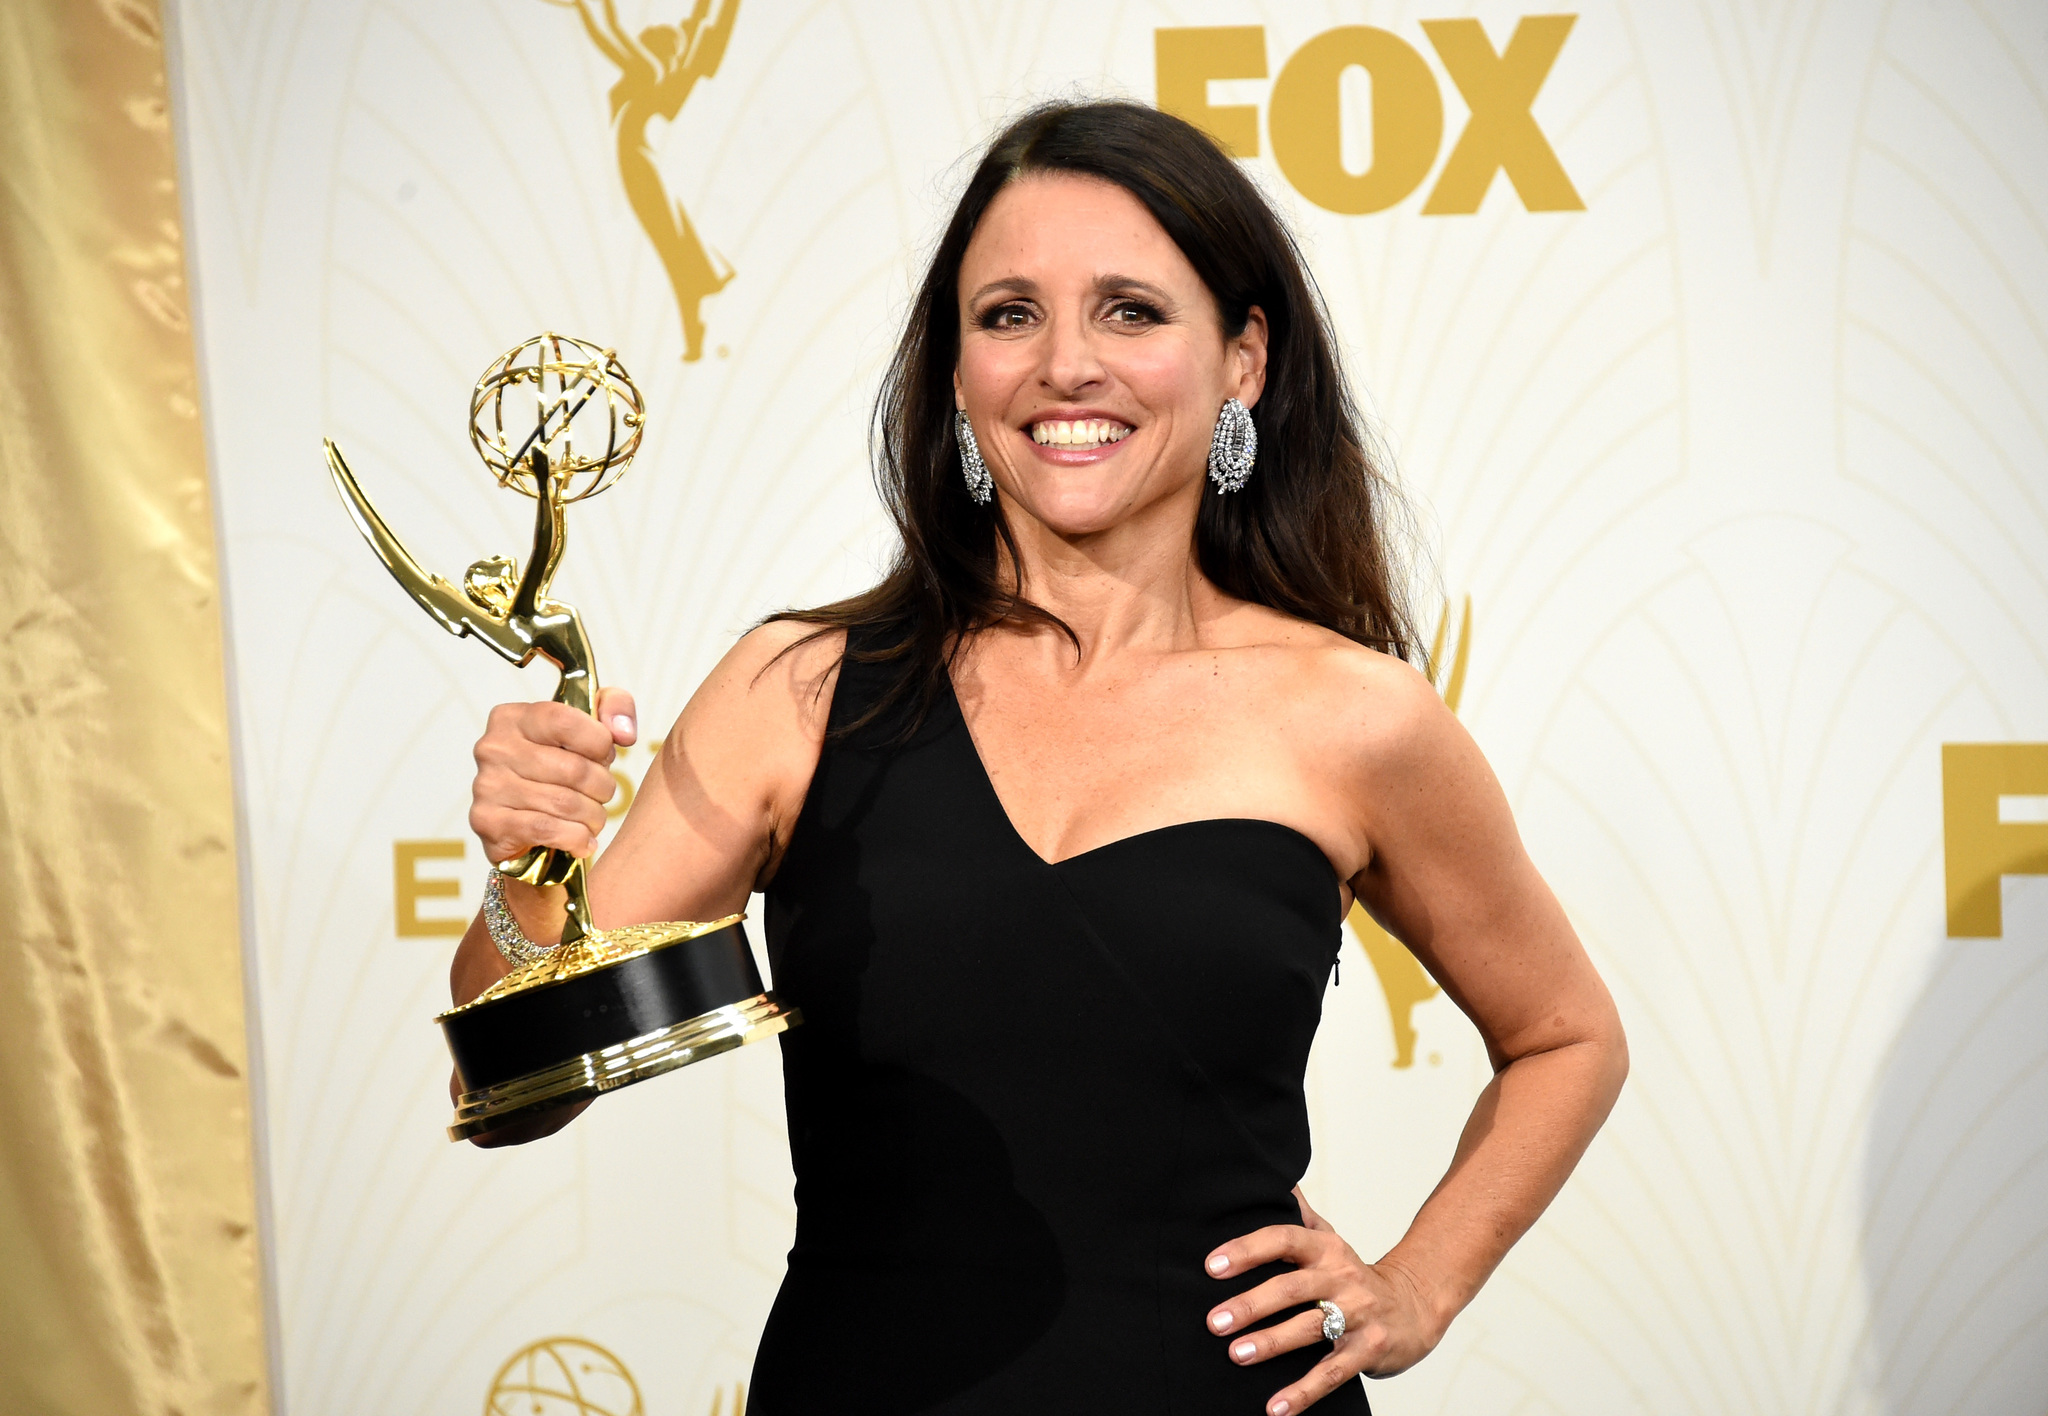 25th anniversary 25 look at 25 top stars then and now julia louis dreyfus at an event for the 67th primetime emmy awards 2015